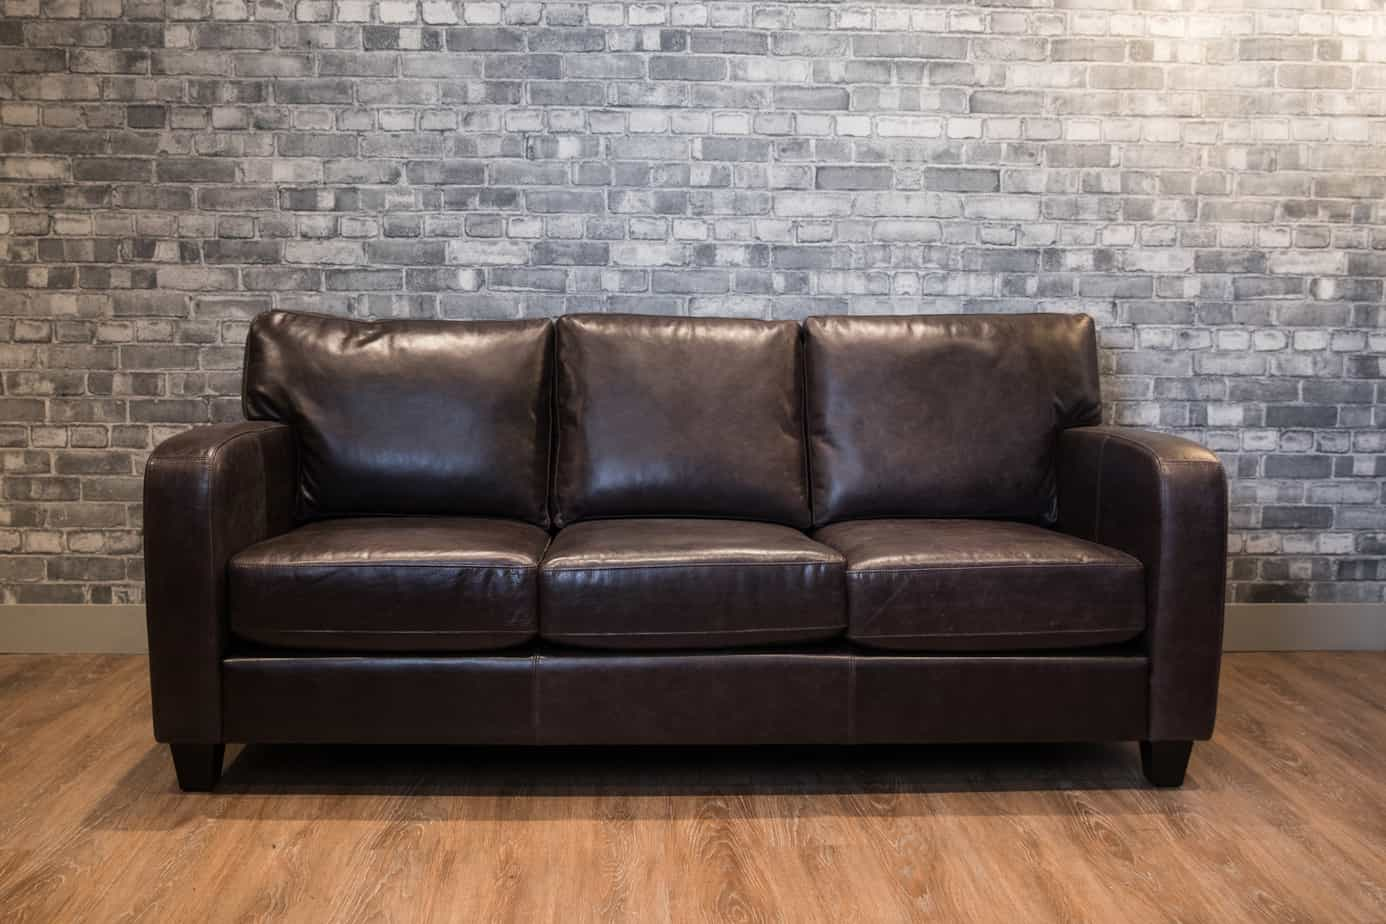 Wondrous The Lake Como Leather Sofa Canadas Boss Leather Sofas And Ncnpc Chair Design For Home Ncnpcorg